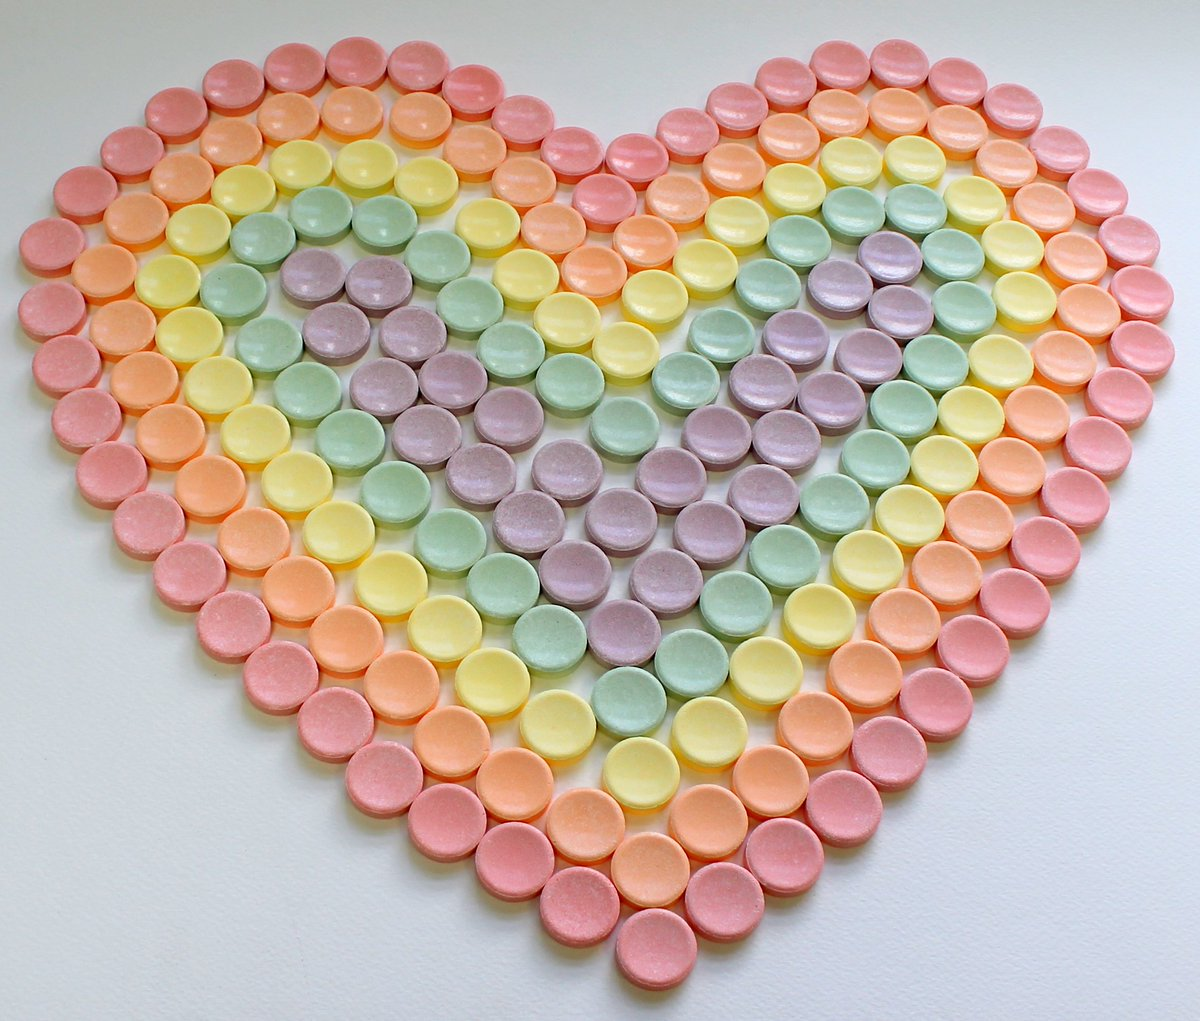 Happy Valentine's Day!  Whatever you #Smarties are up to, we hope it's extra sweet :) https://t.co/5KP5vNaaWh